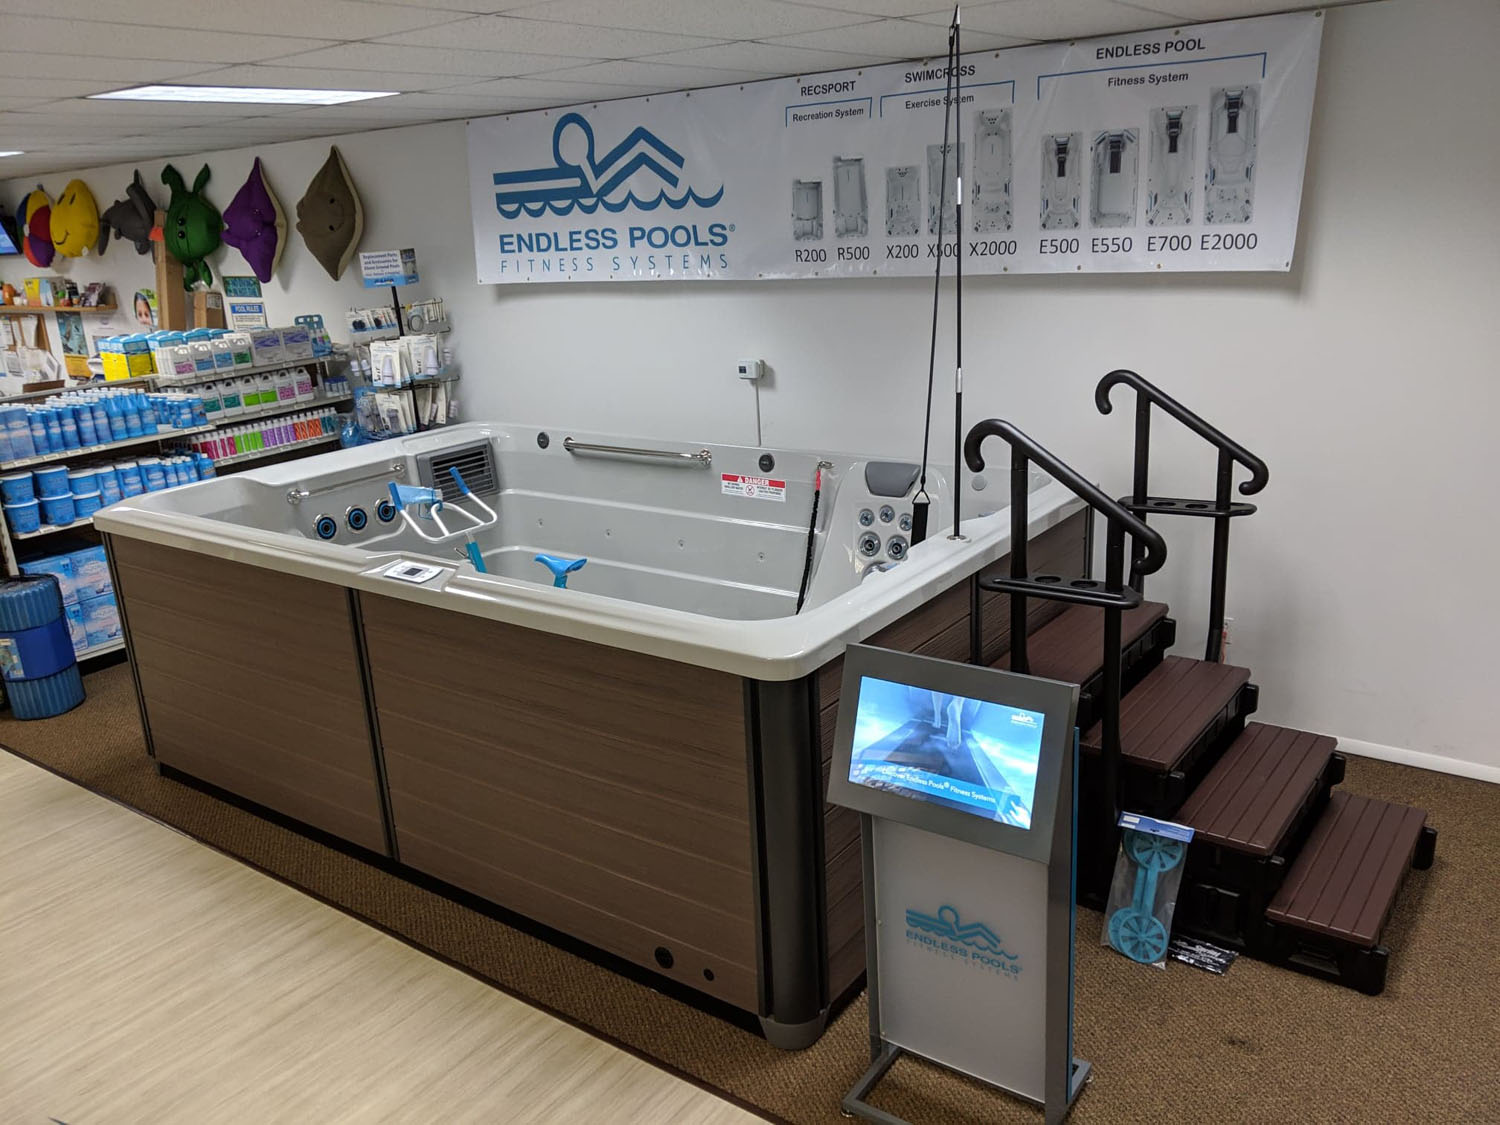 Endless Pools swim spa display model with kiosk next to the pool section in the Bloomsburg showroom